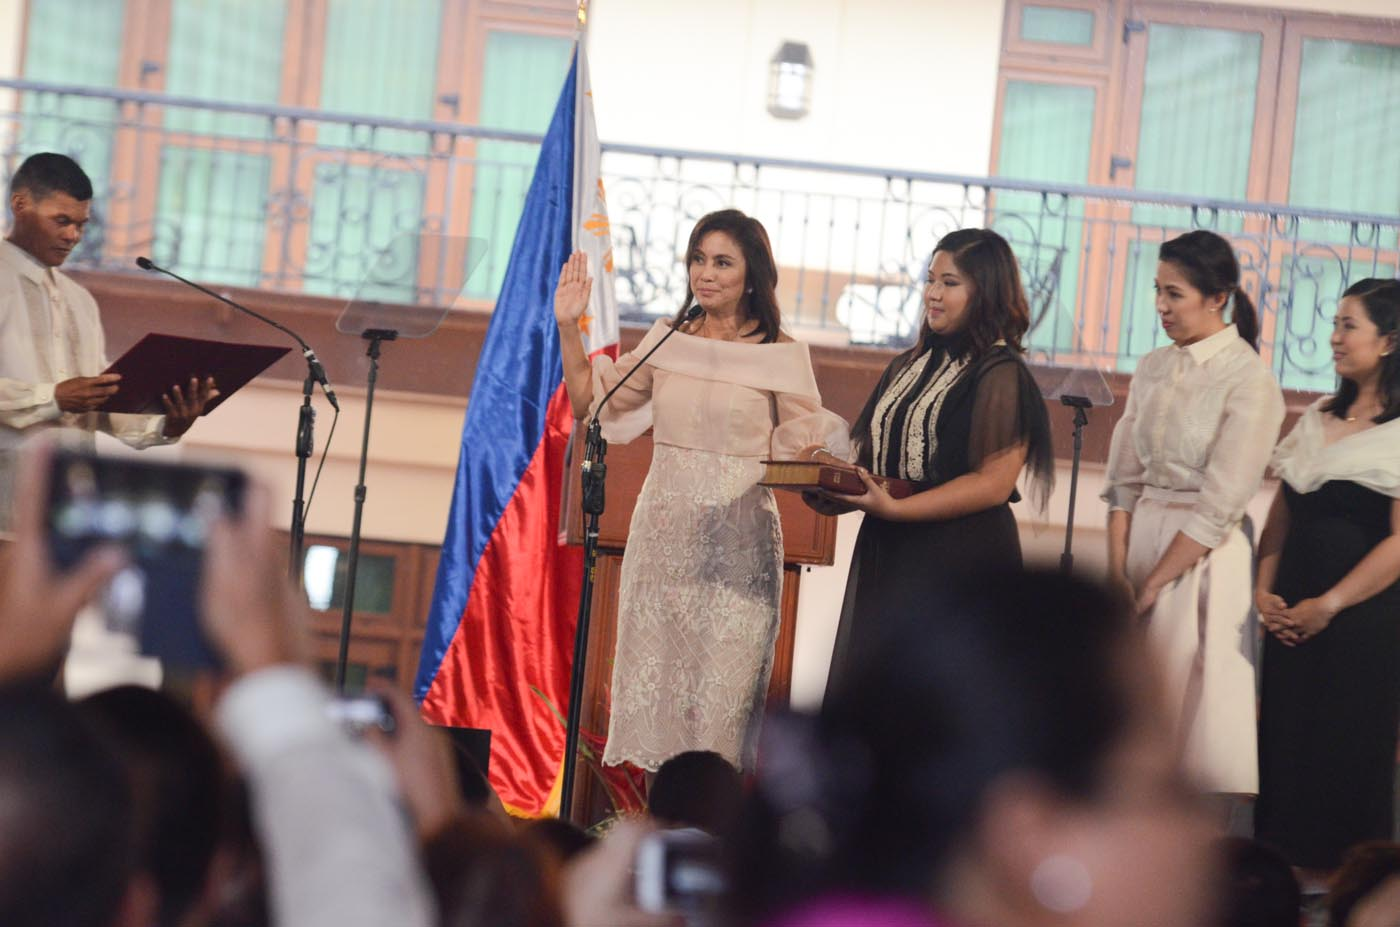 DULY ELECTED. Vice President Leni Robredo takes her oath at the Quezon City Reception House on June 30, 2016. Photo by Alecs Ongcal/Rappler